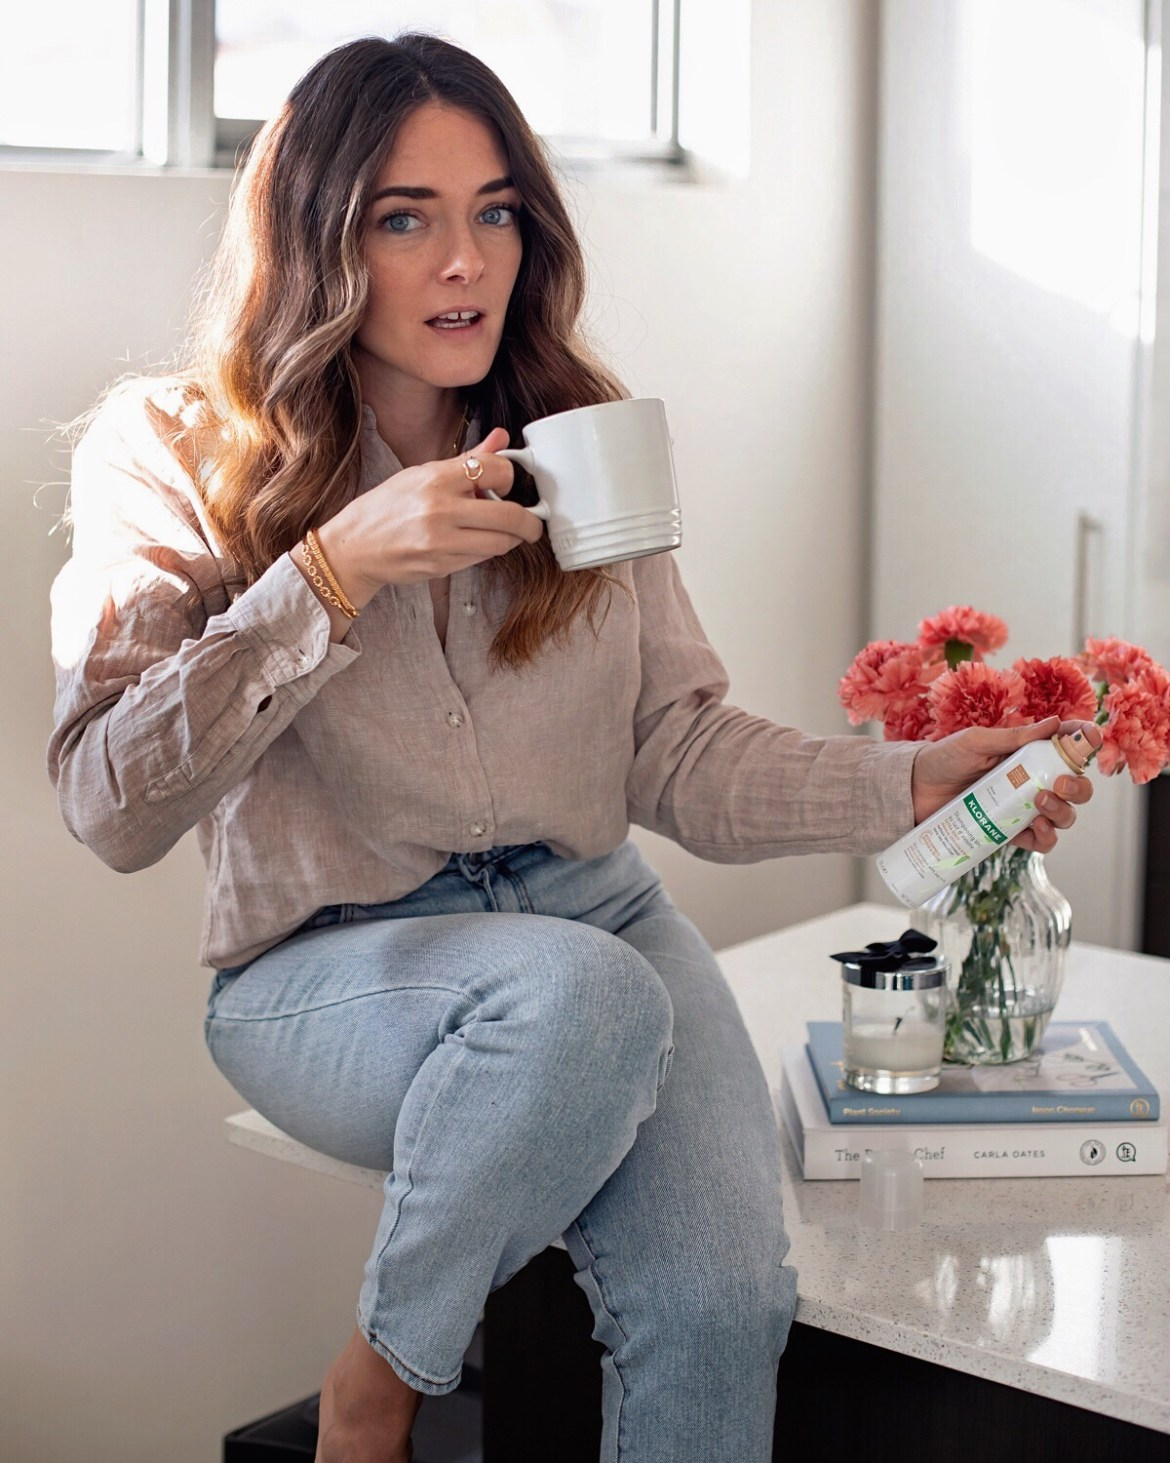 Inspiring Wit blogger Jenelle with morning coffee at home